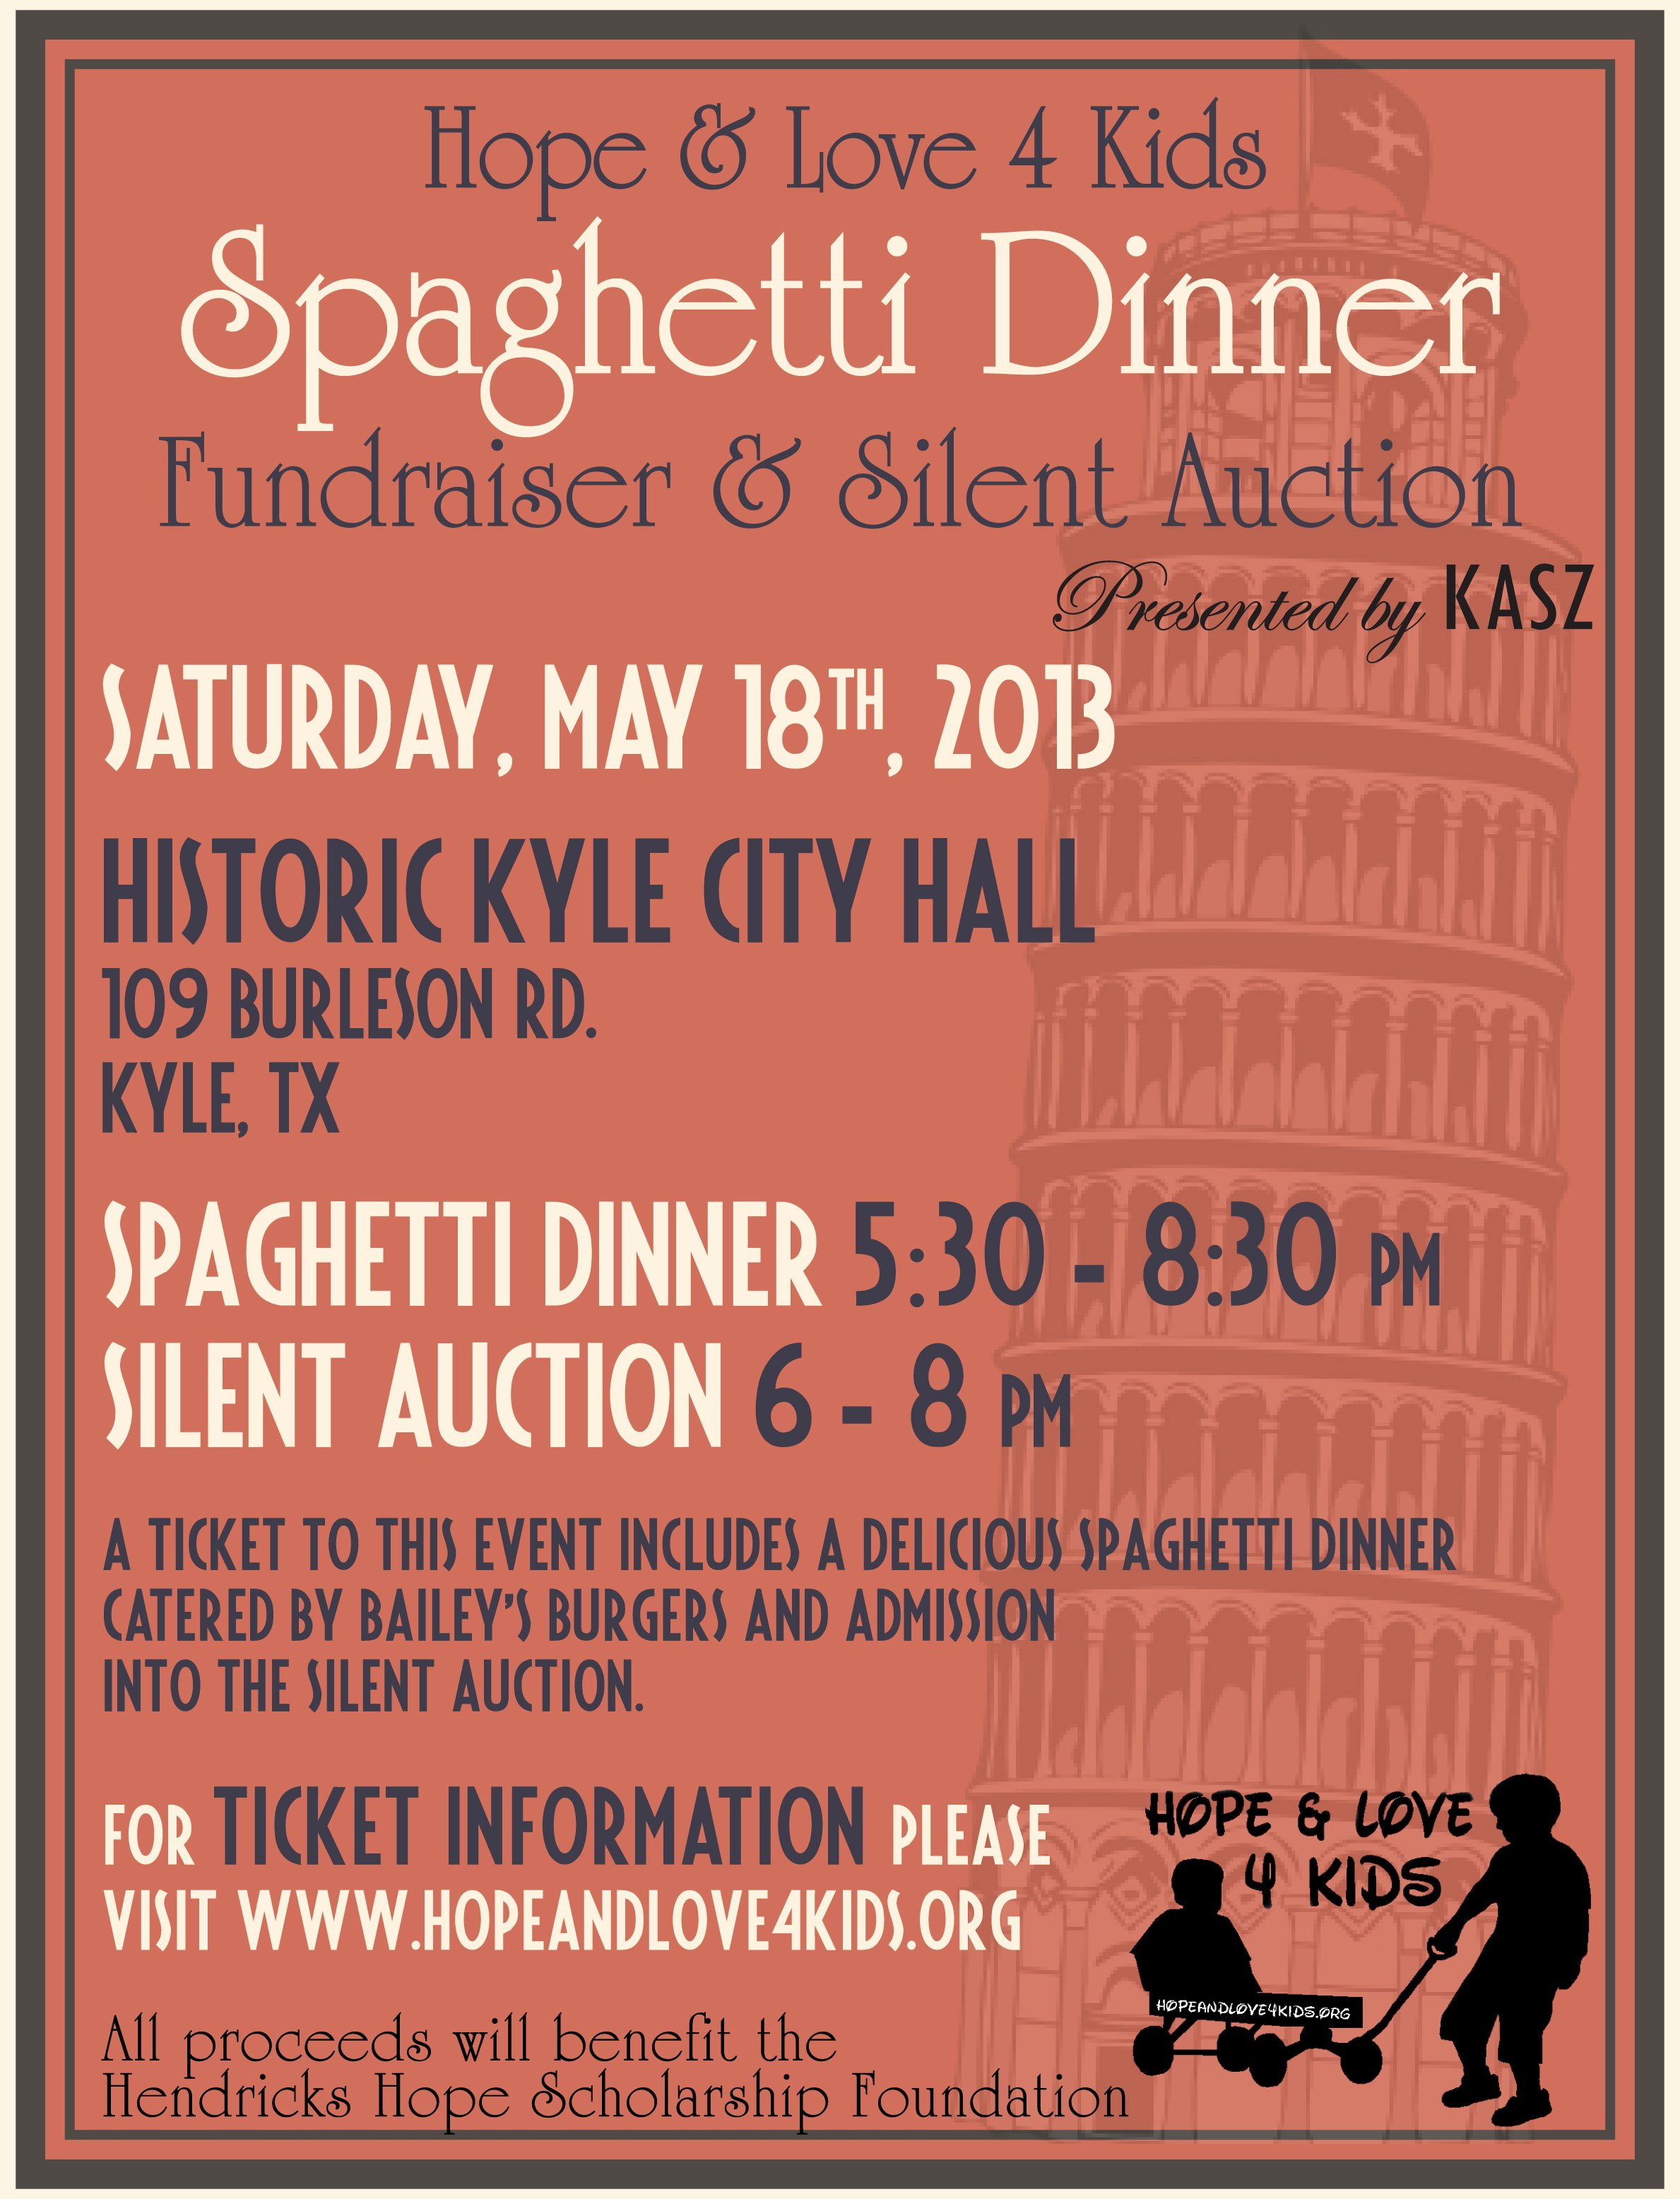 Spaghetti Dinner Fundraiser Flyer Template Unique Hope & Love 4 Kids